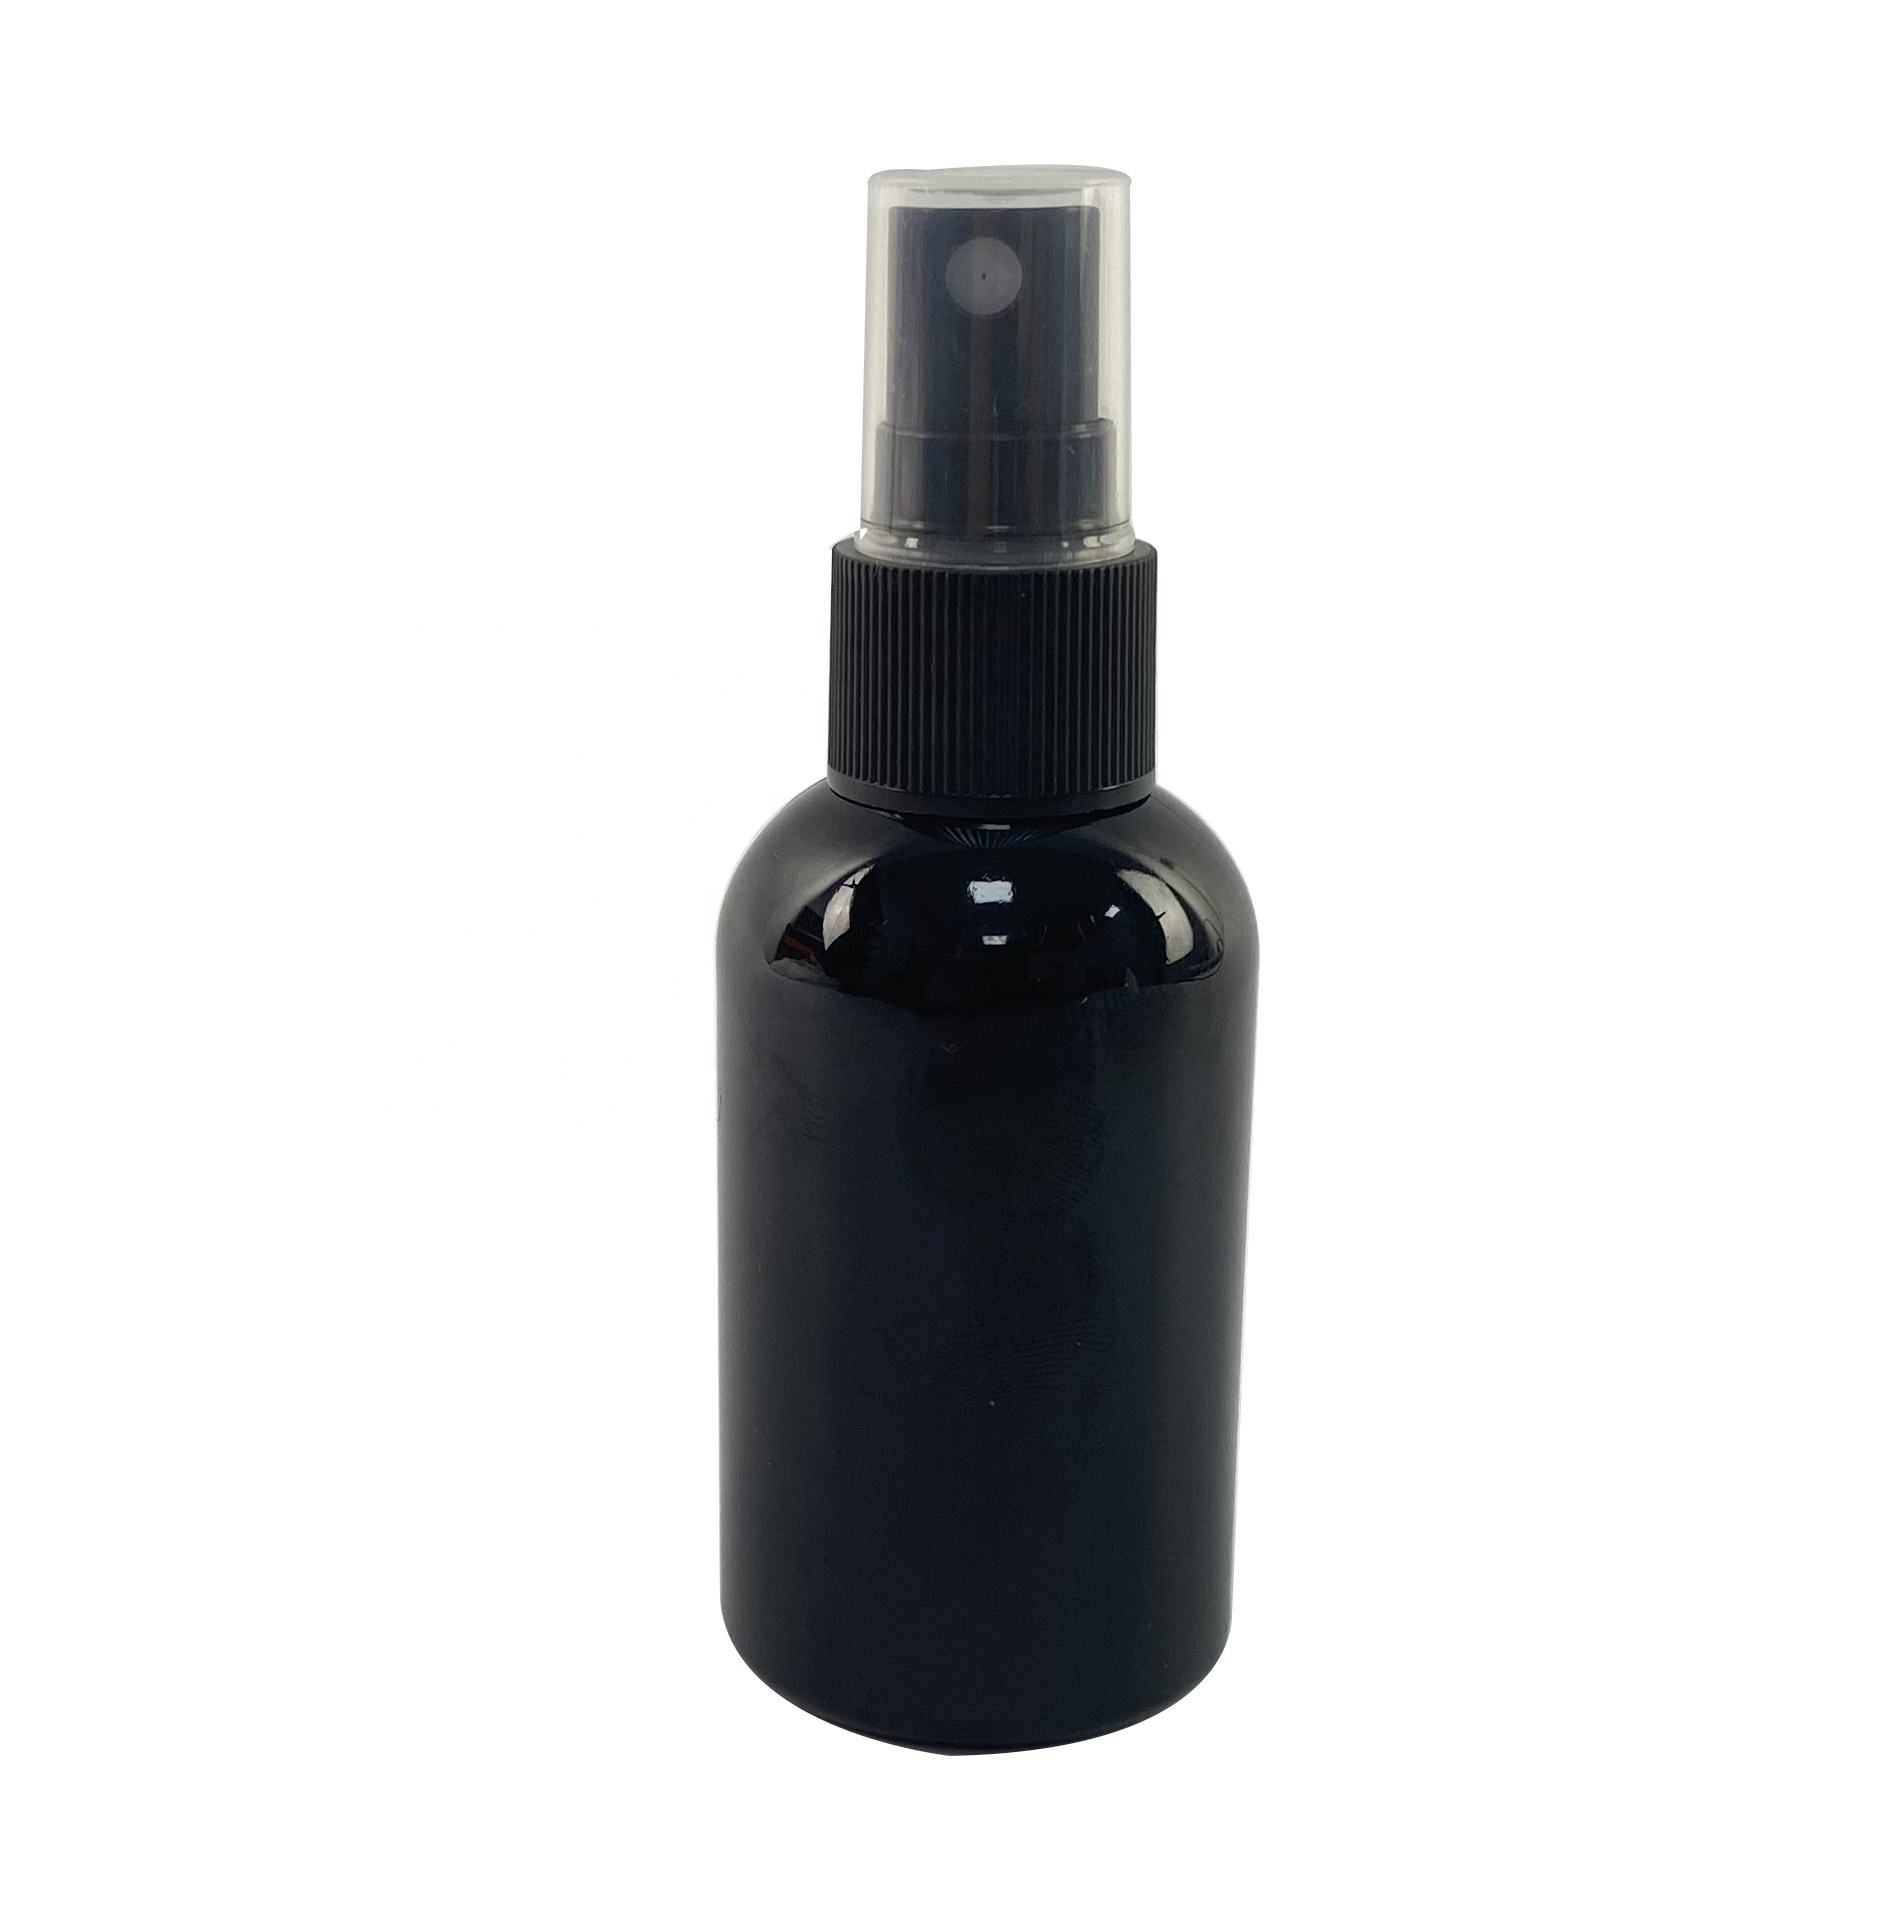 Fast delivery 2 oz 60ml Black Plastic PET Bottle with black disc top cap, fine mist spray pump caps